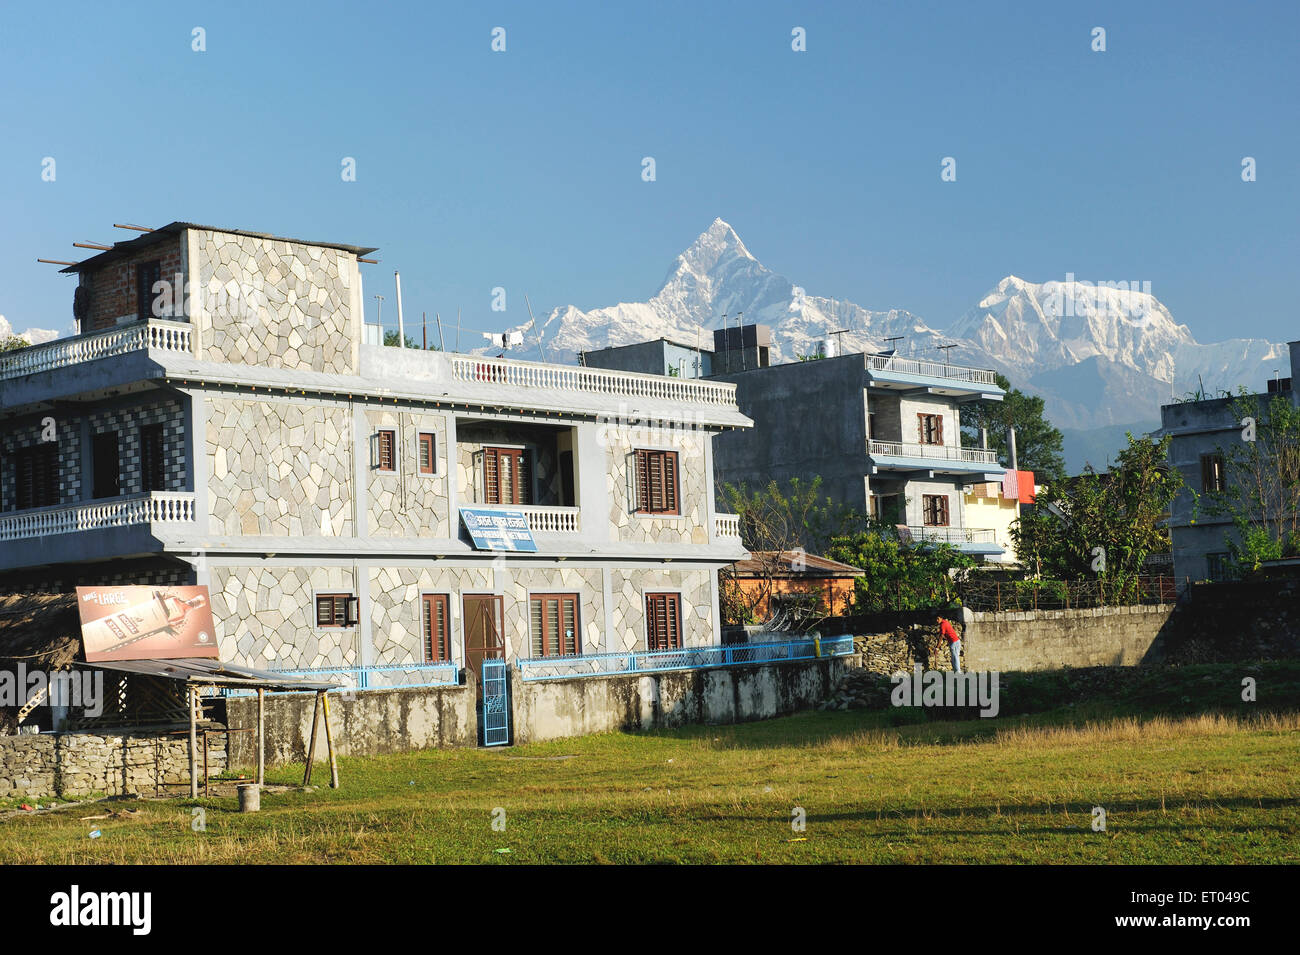 Houses at snow peaks ; Pokhara ; Nepal - Stock Image